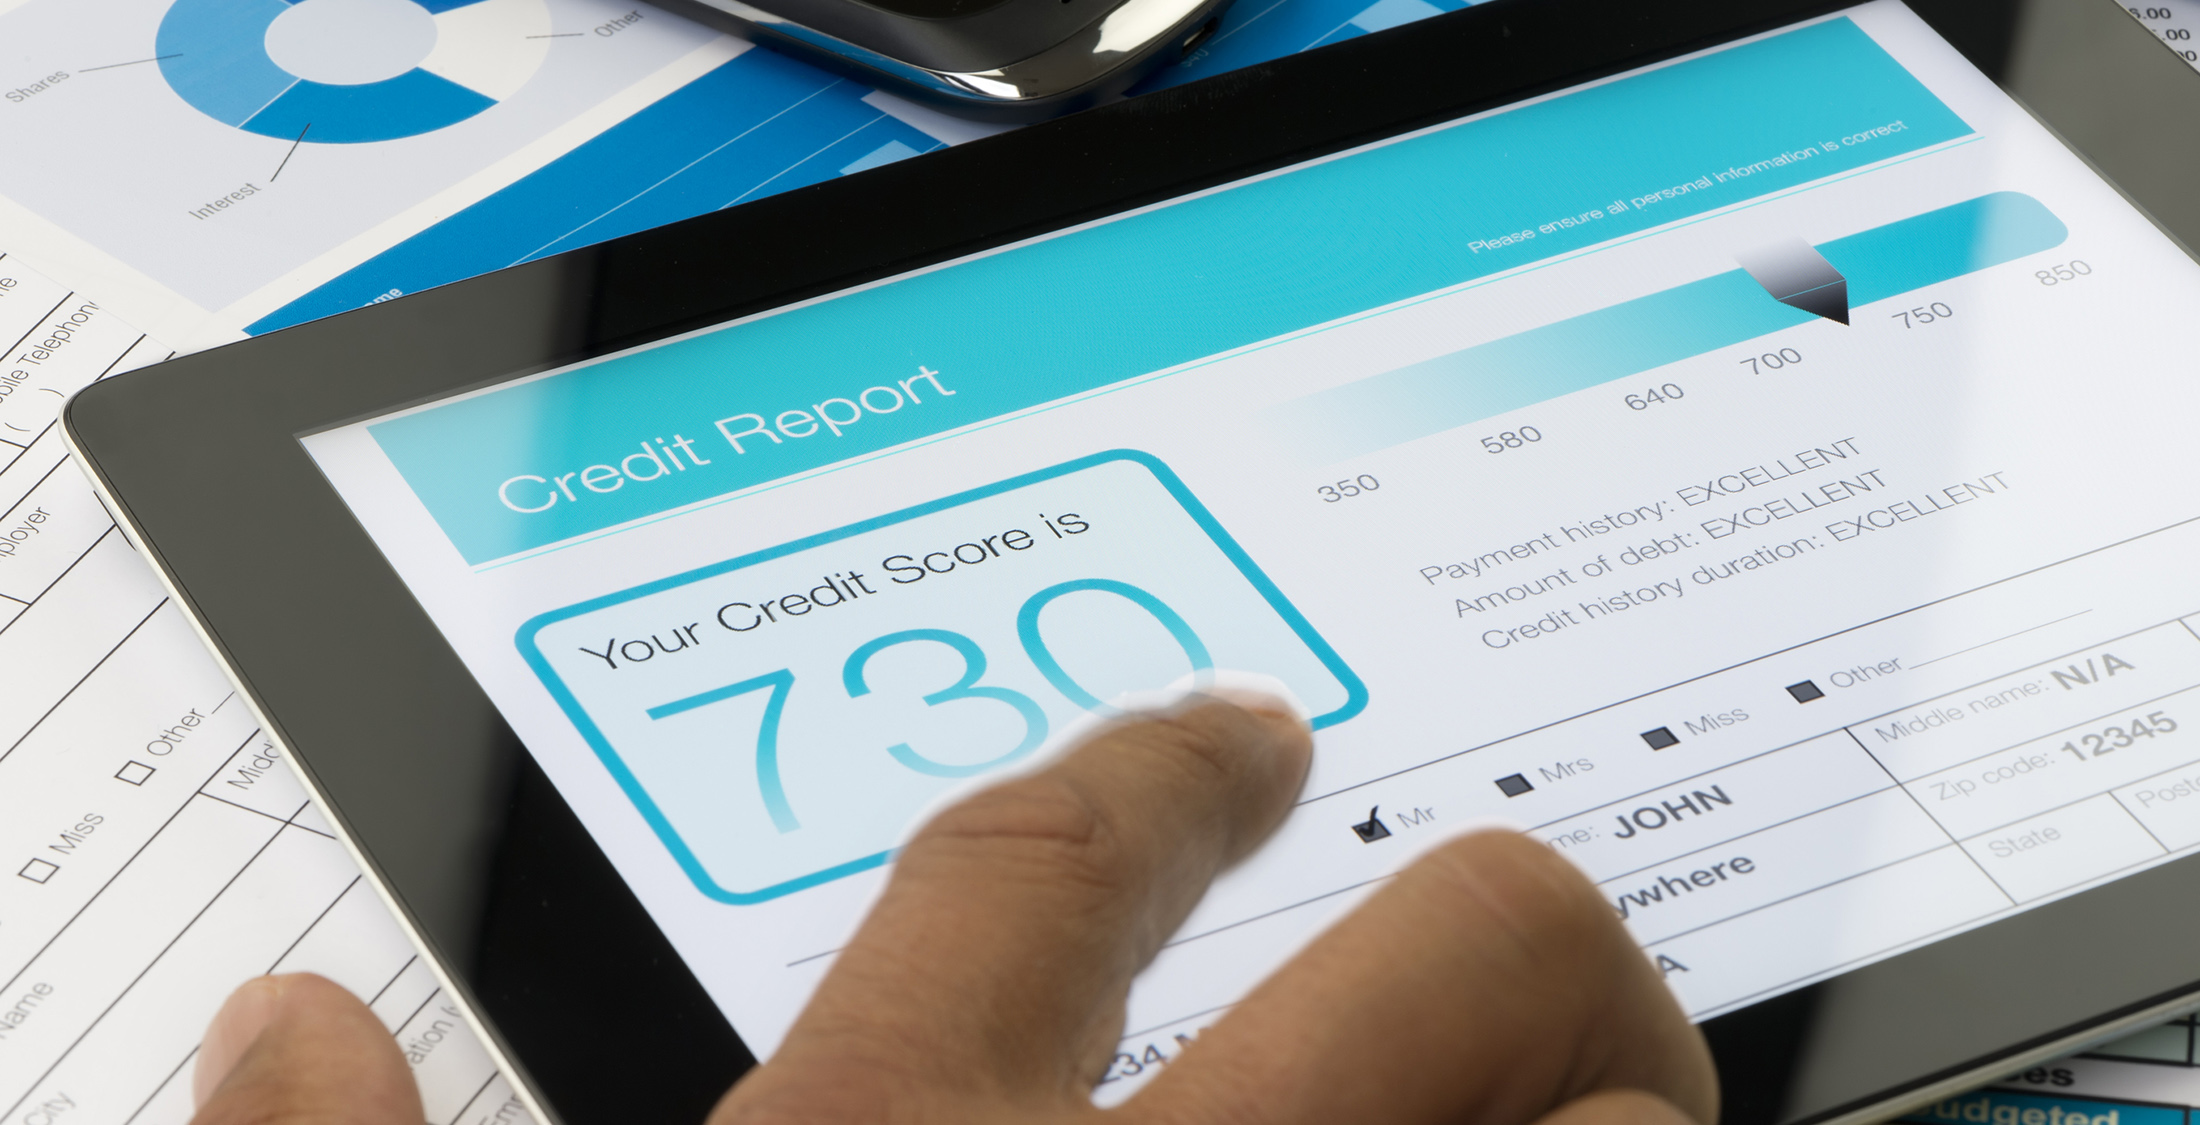 credit report on a digital tablet with paperwork.